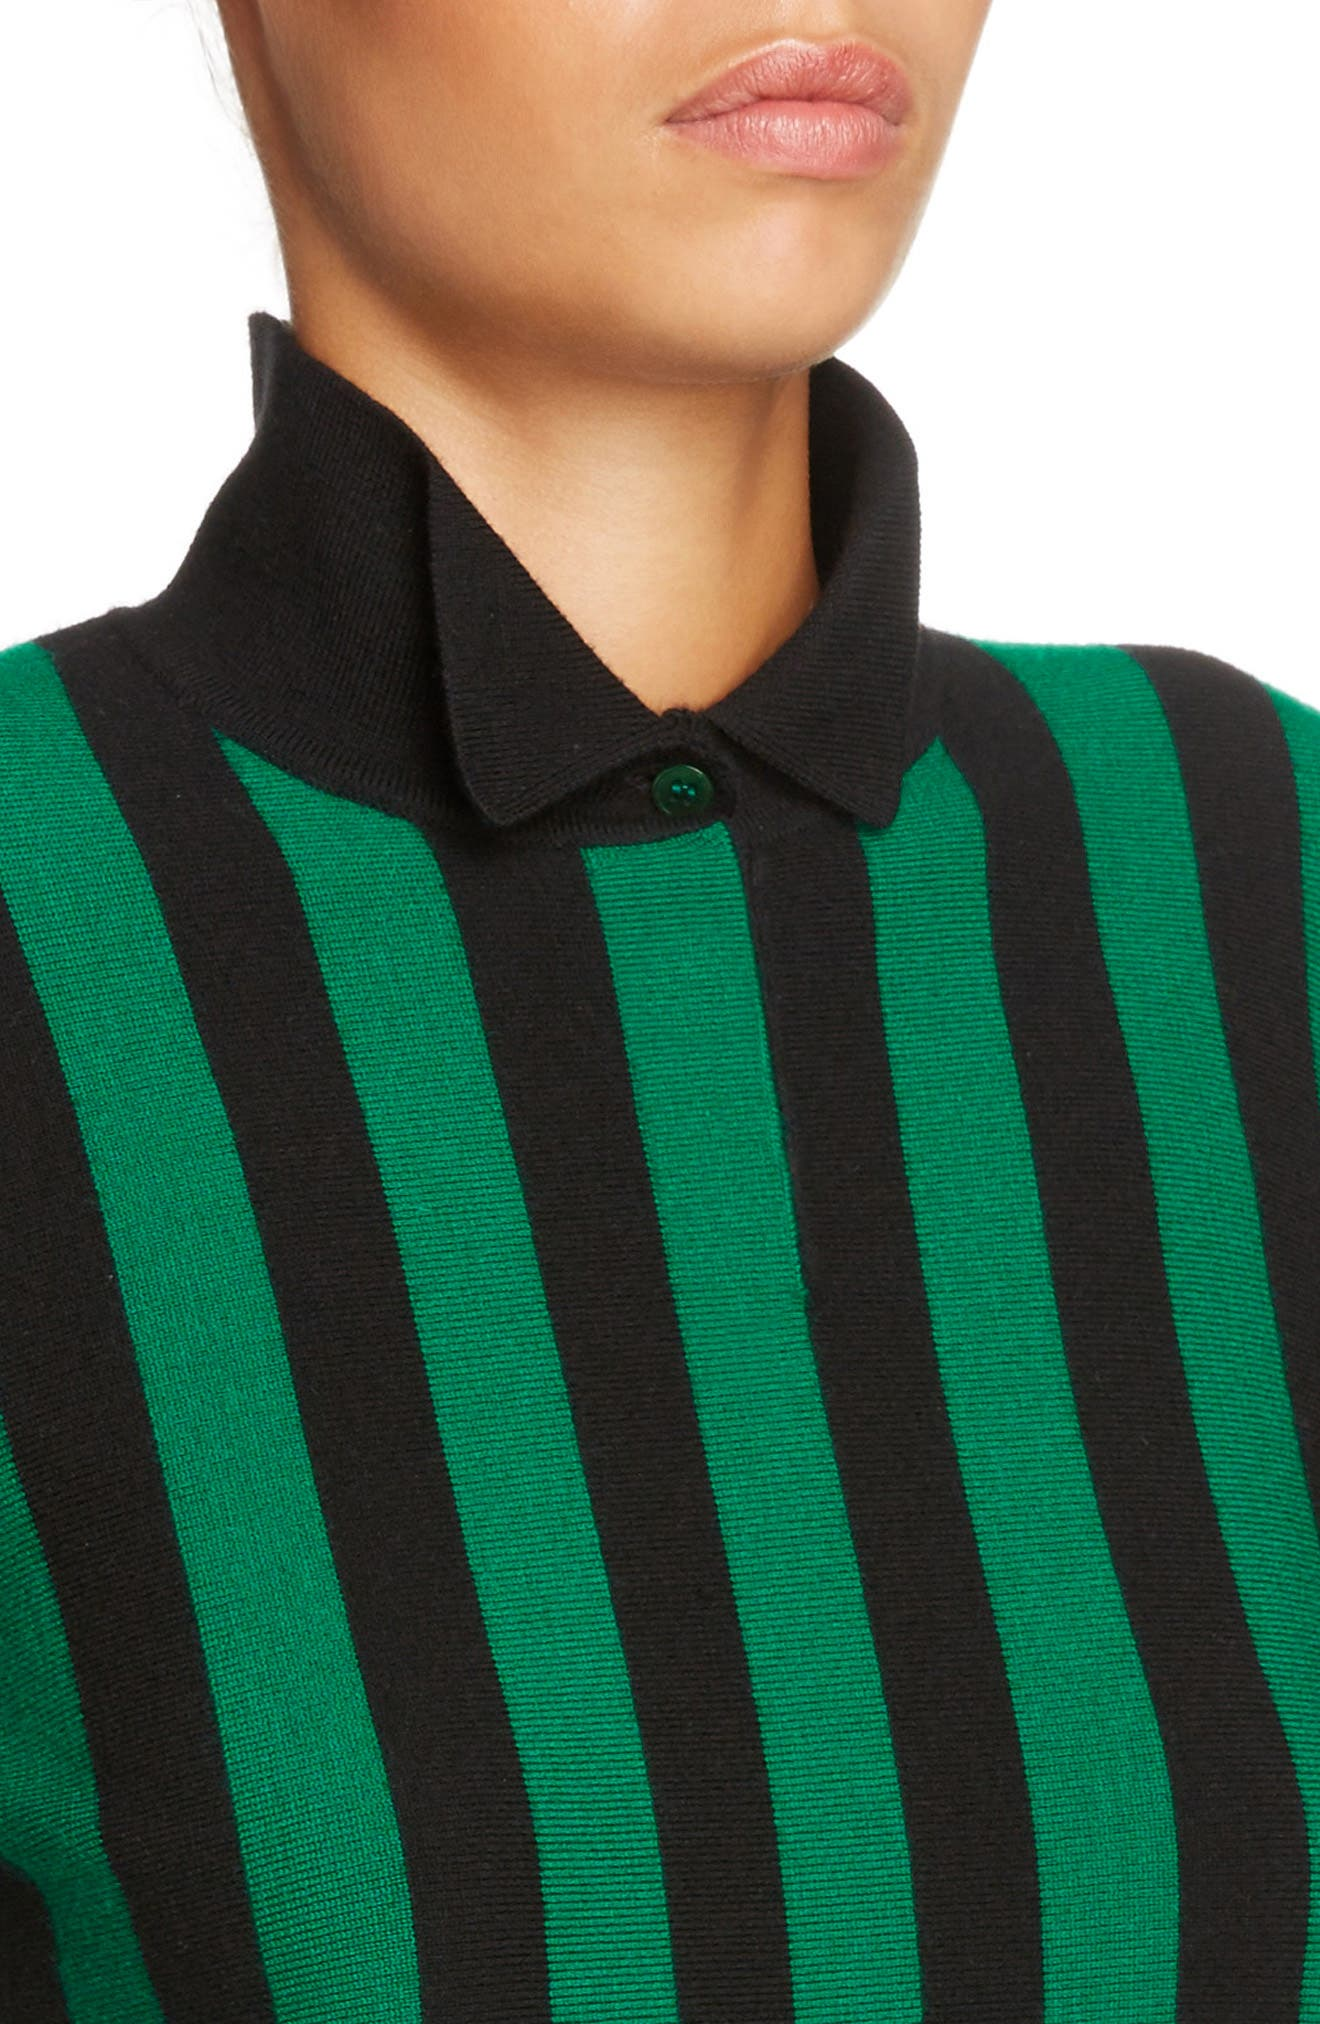 Stripe High Neck Sweater,                             Alternate thumbnail 4, color,